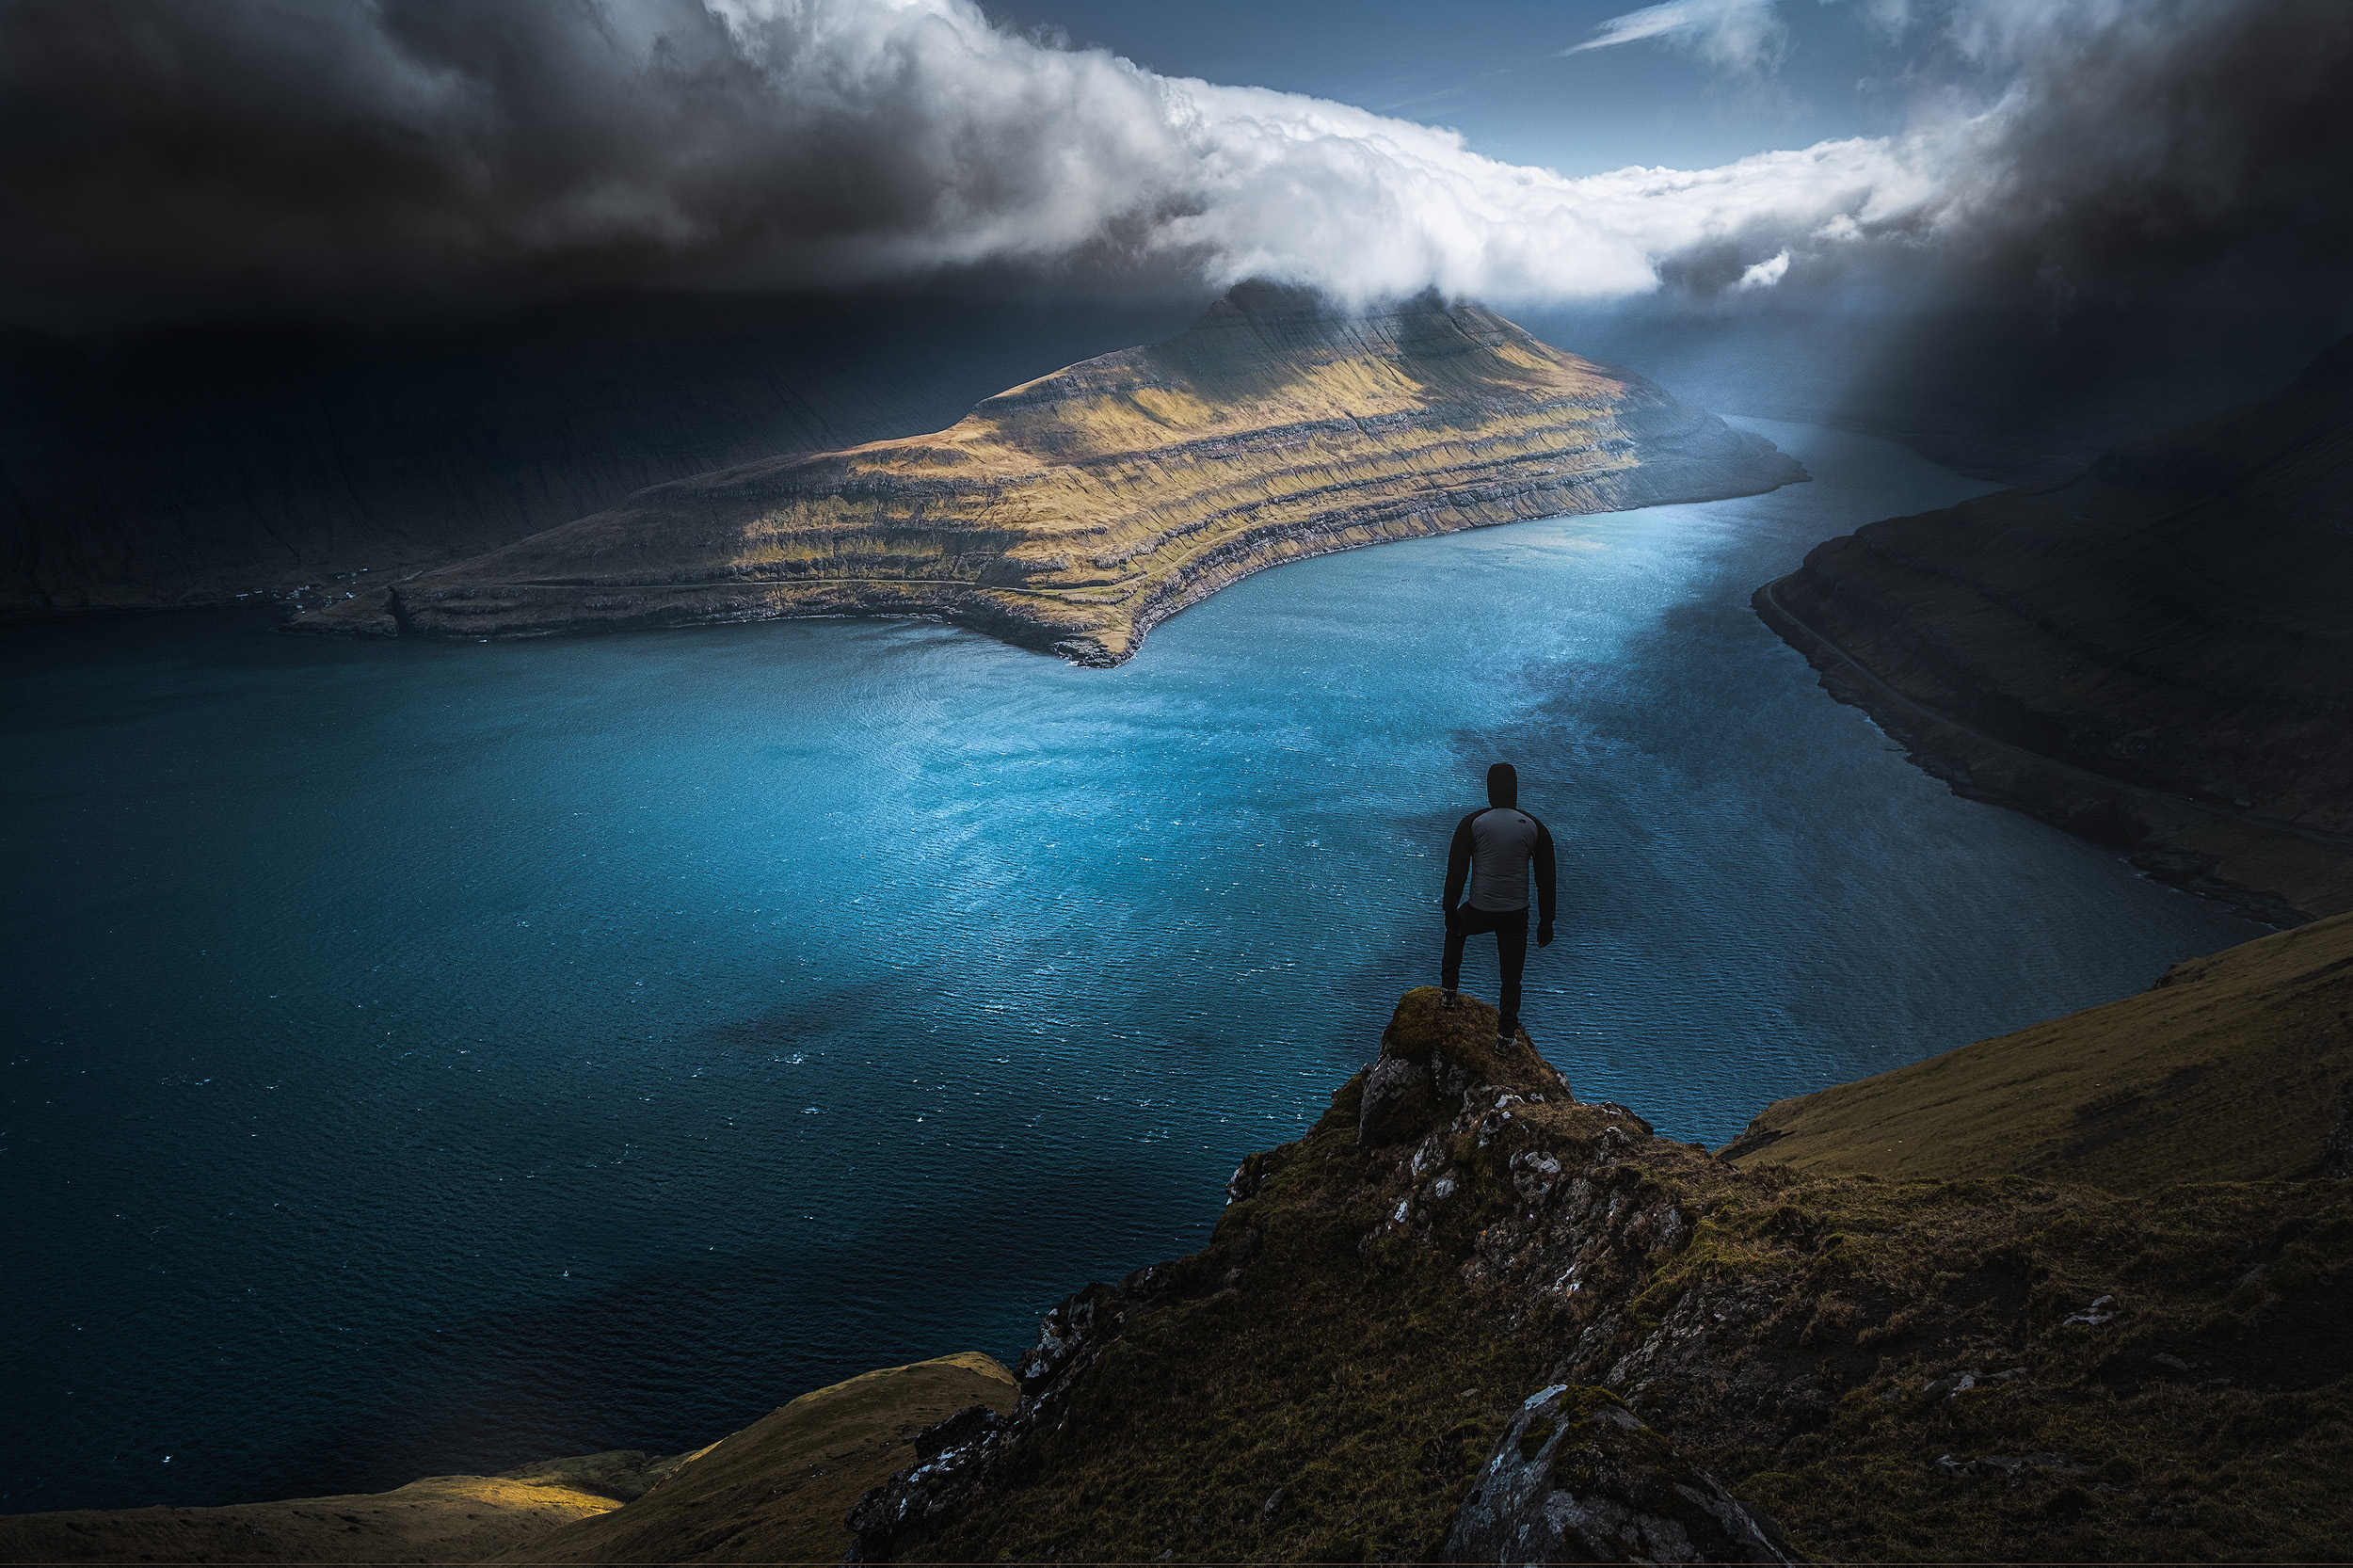 The view from above Funningsfjordur as light breaks through the heavy storm clouds. Andrea Livieri gives some scale to the scene.